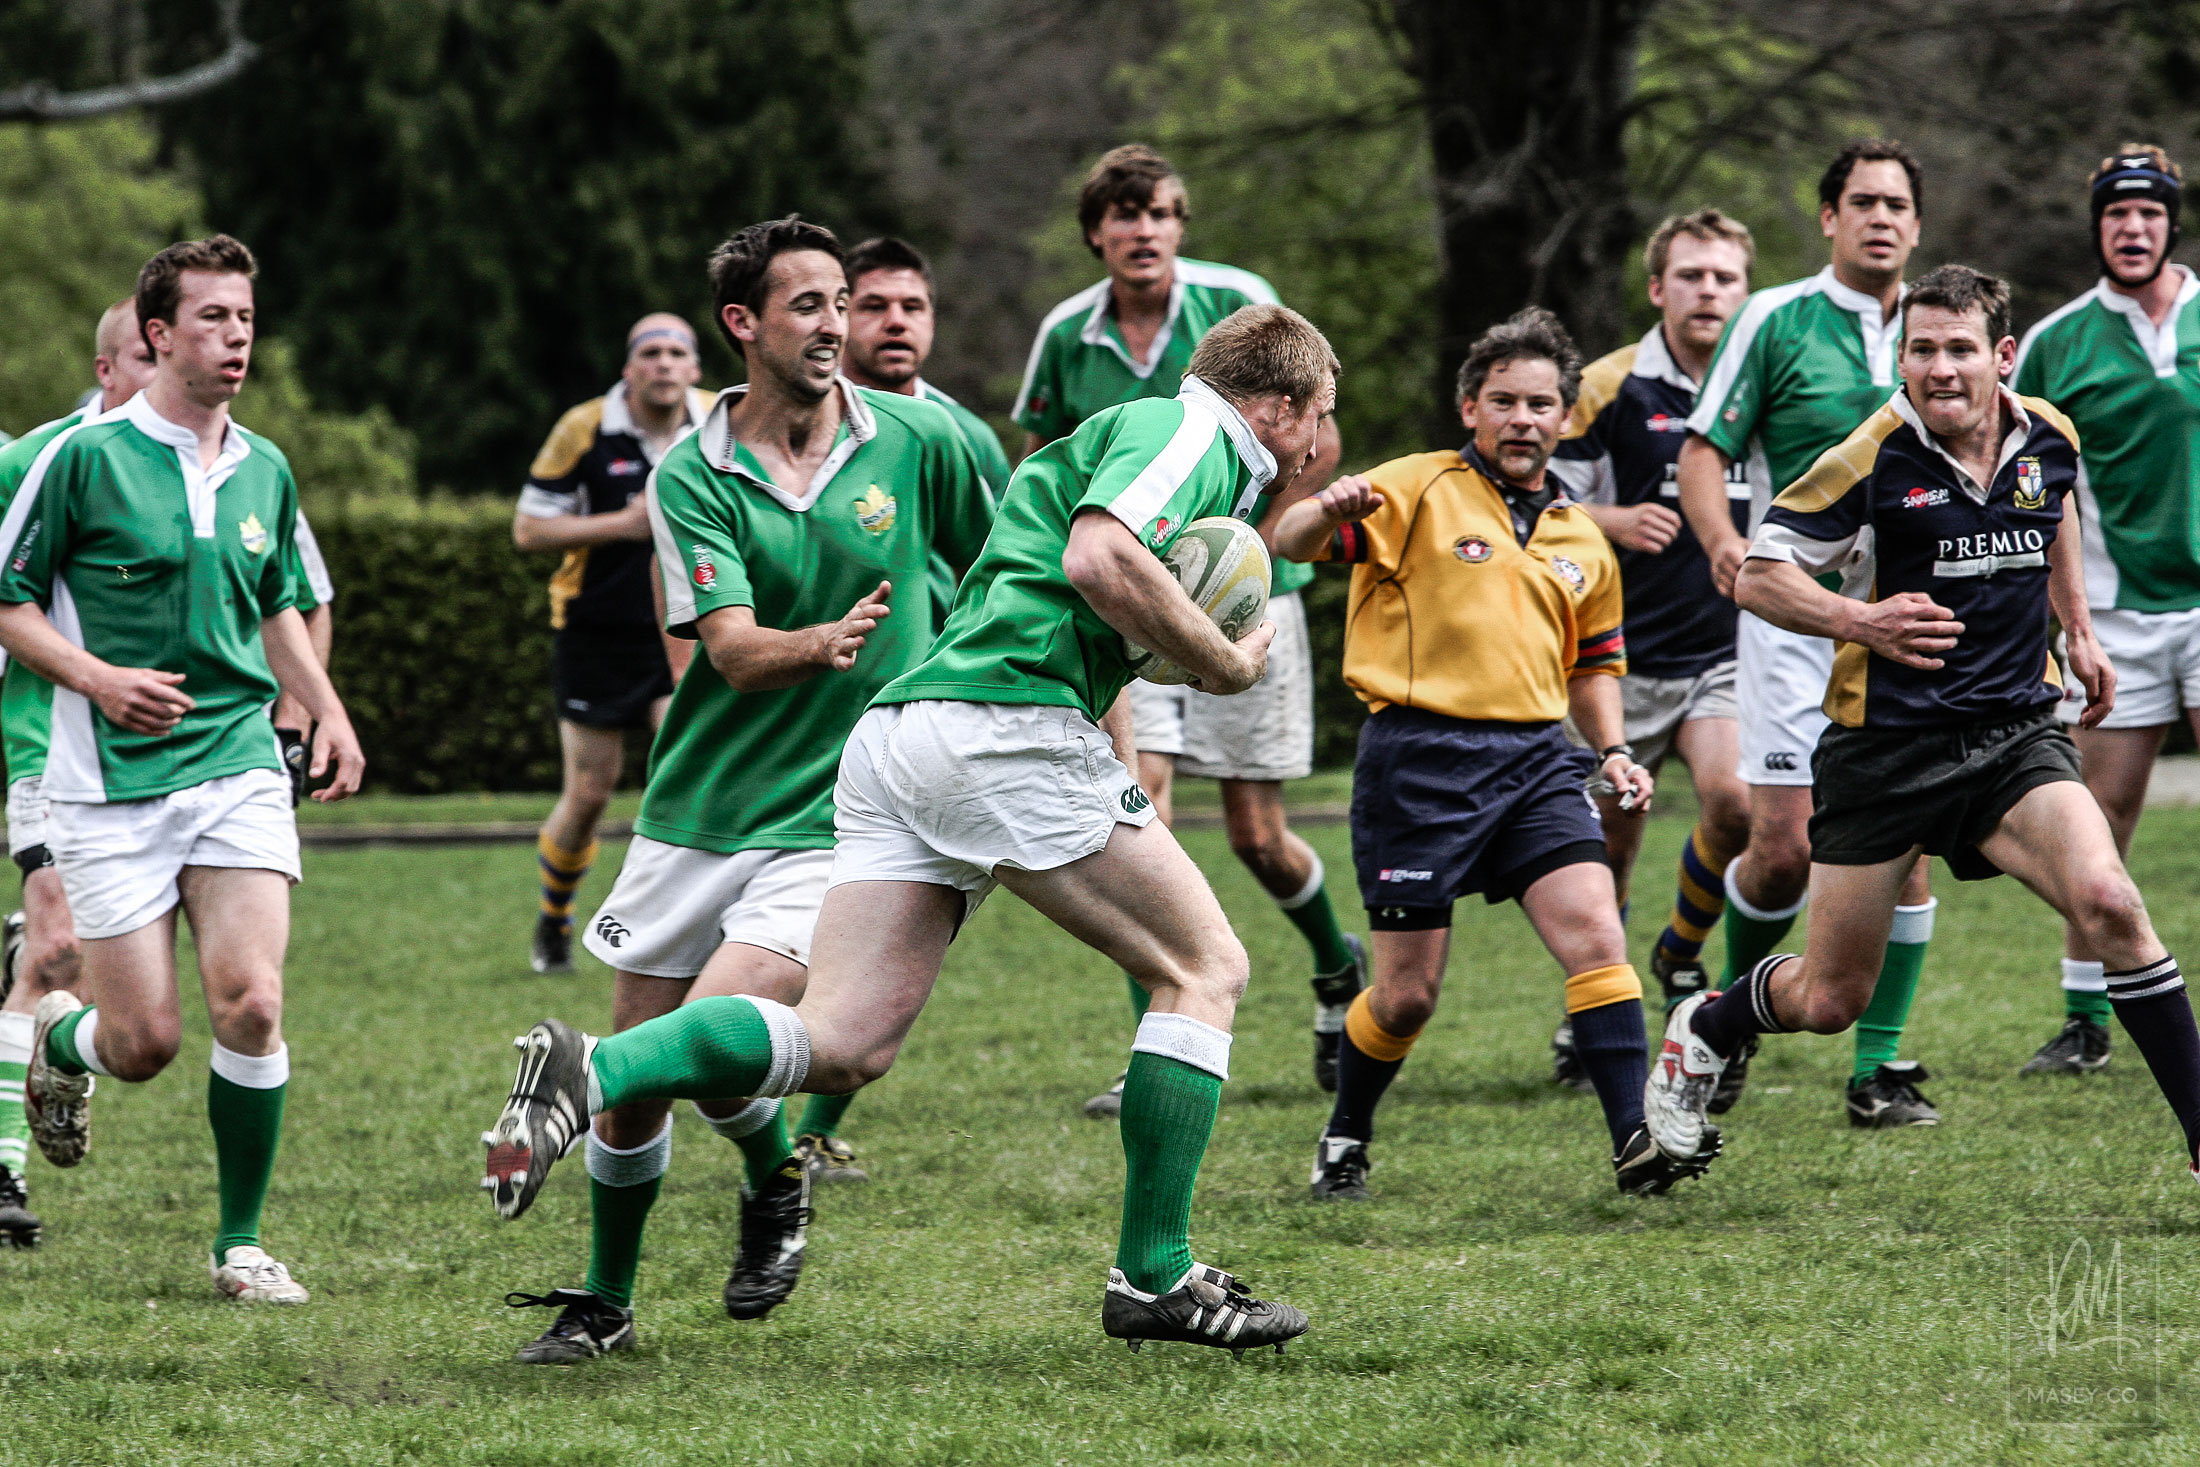 Stanley Park Rugby